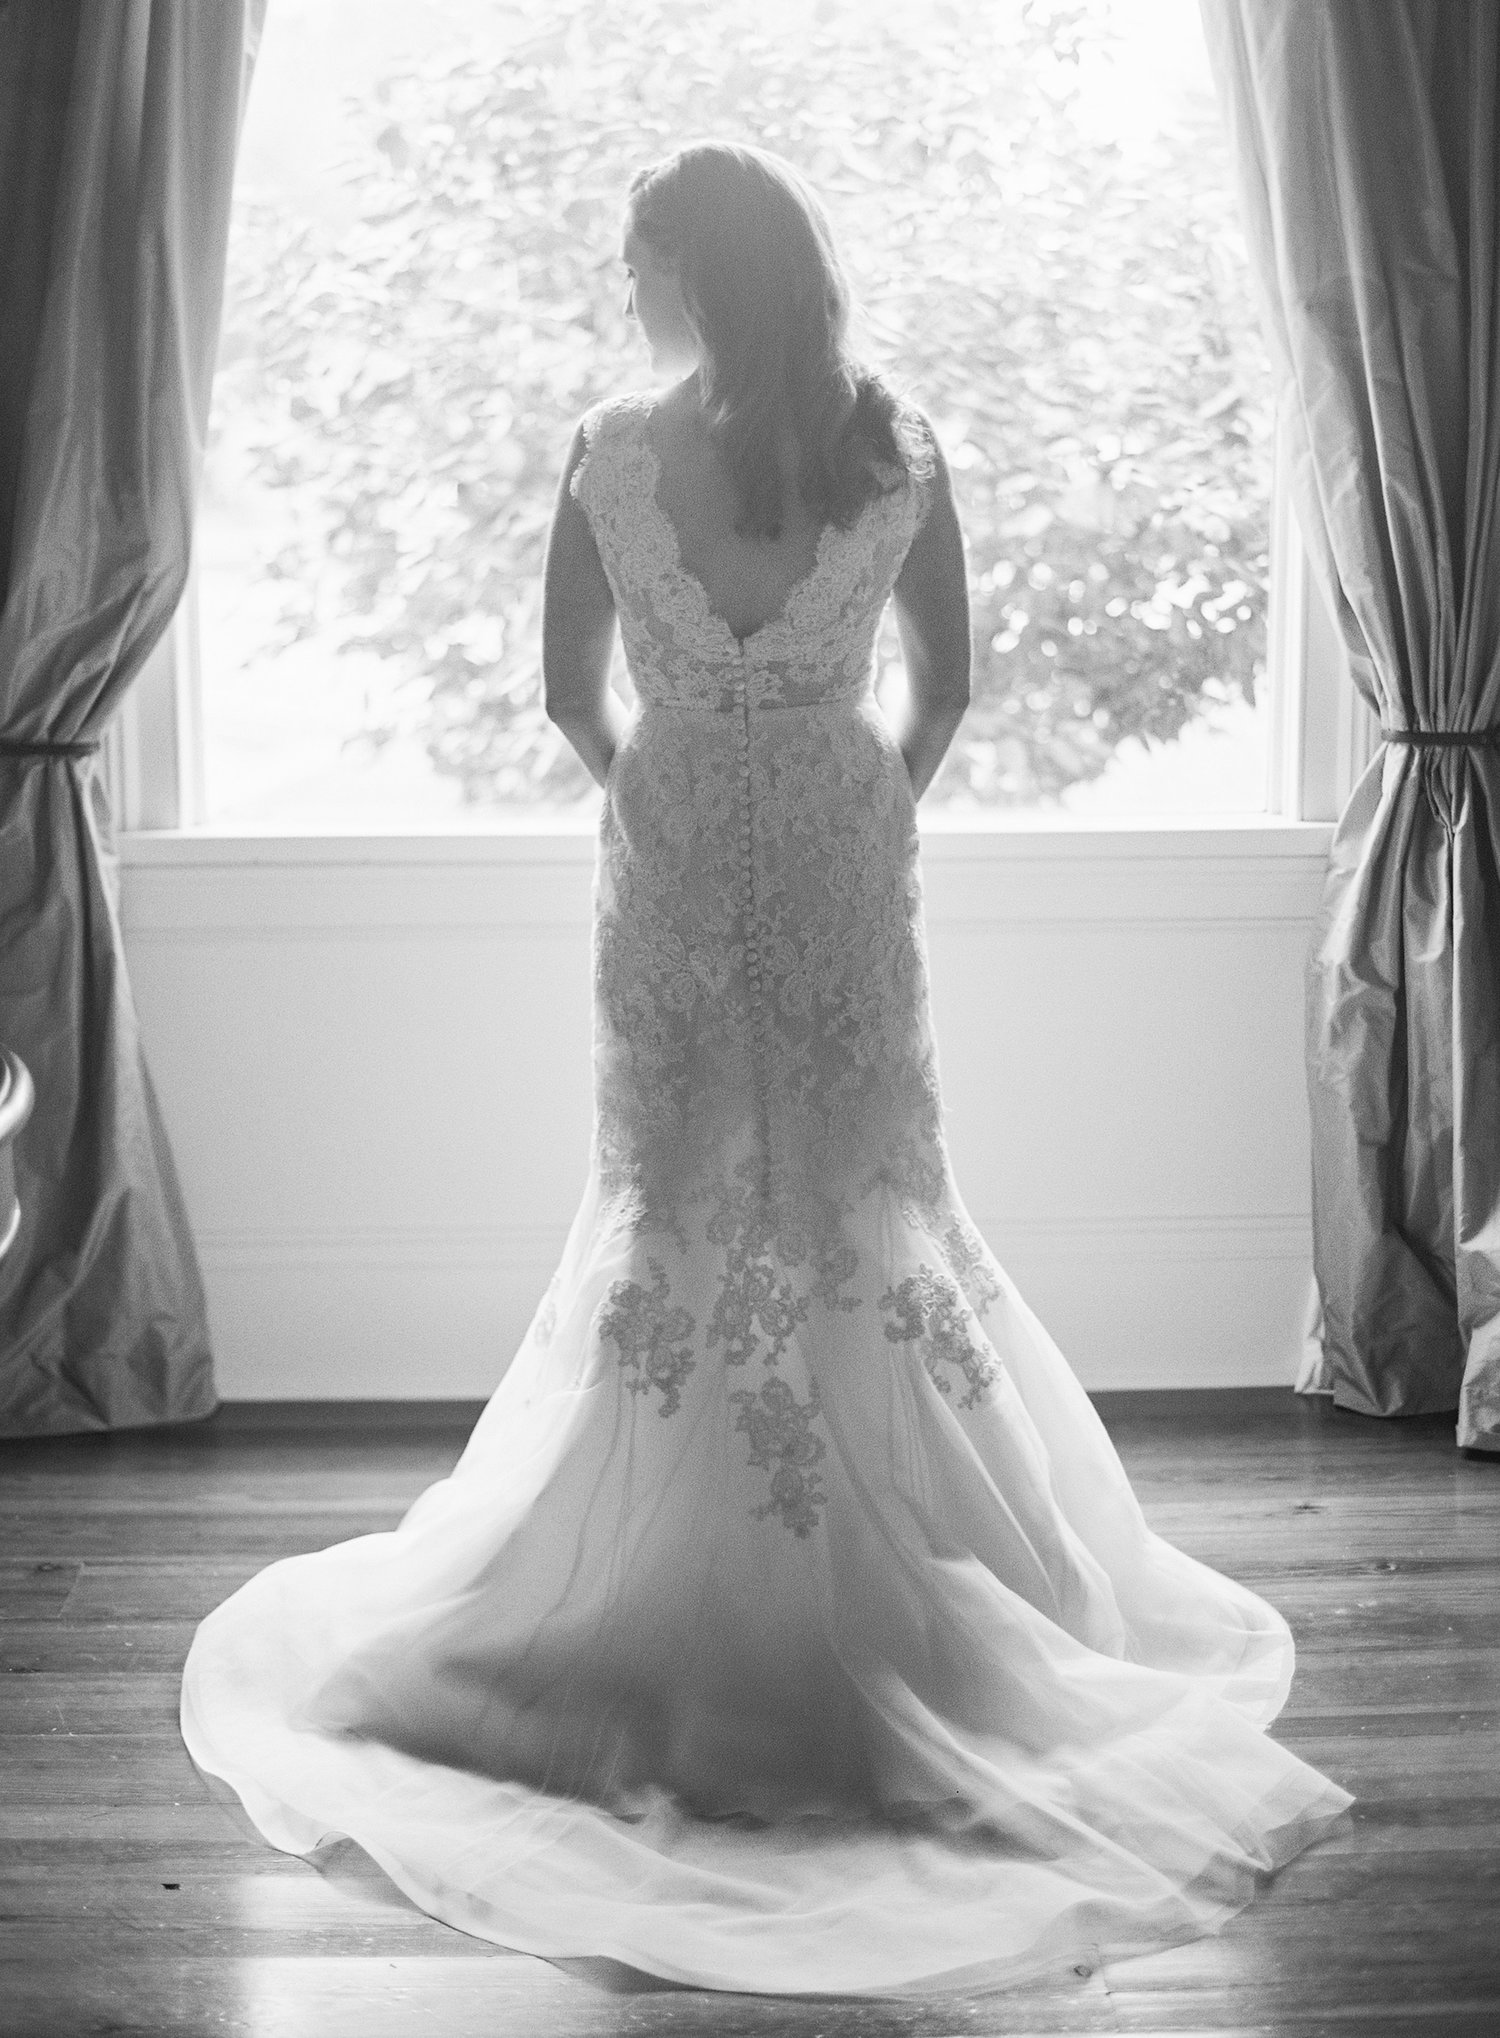 black and white photo of a bride in her wedding dress looking out the window